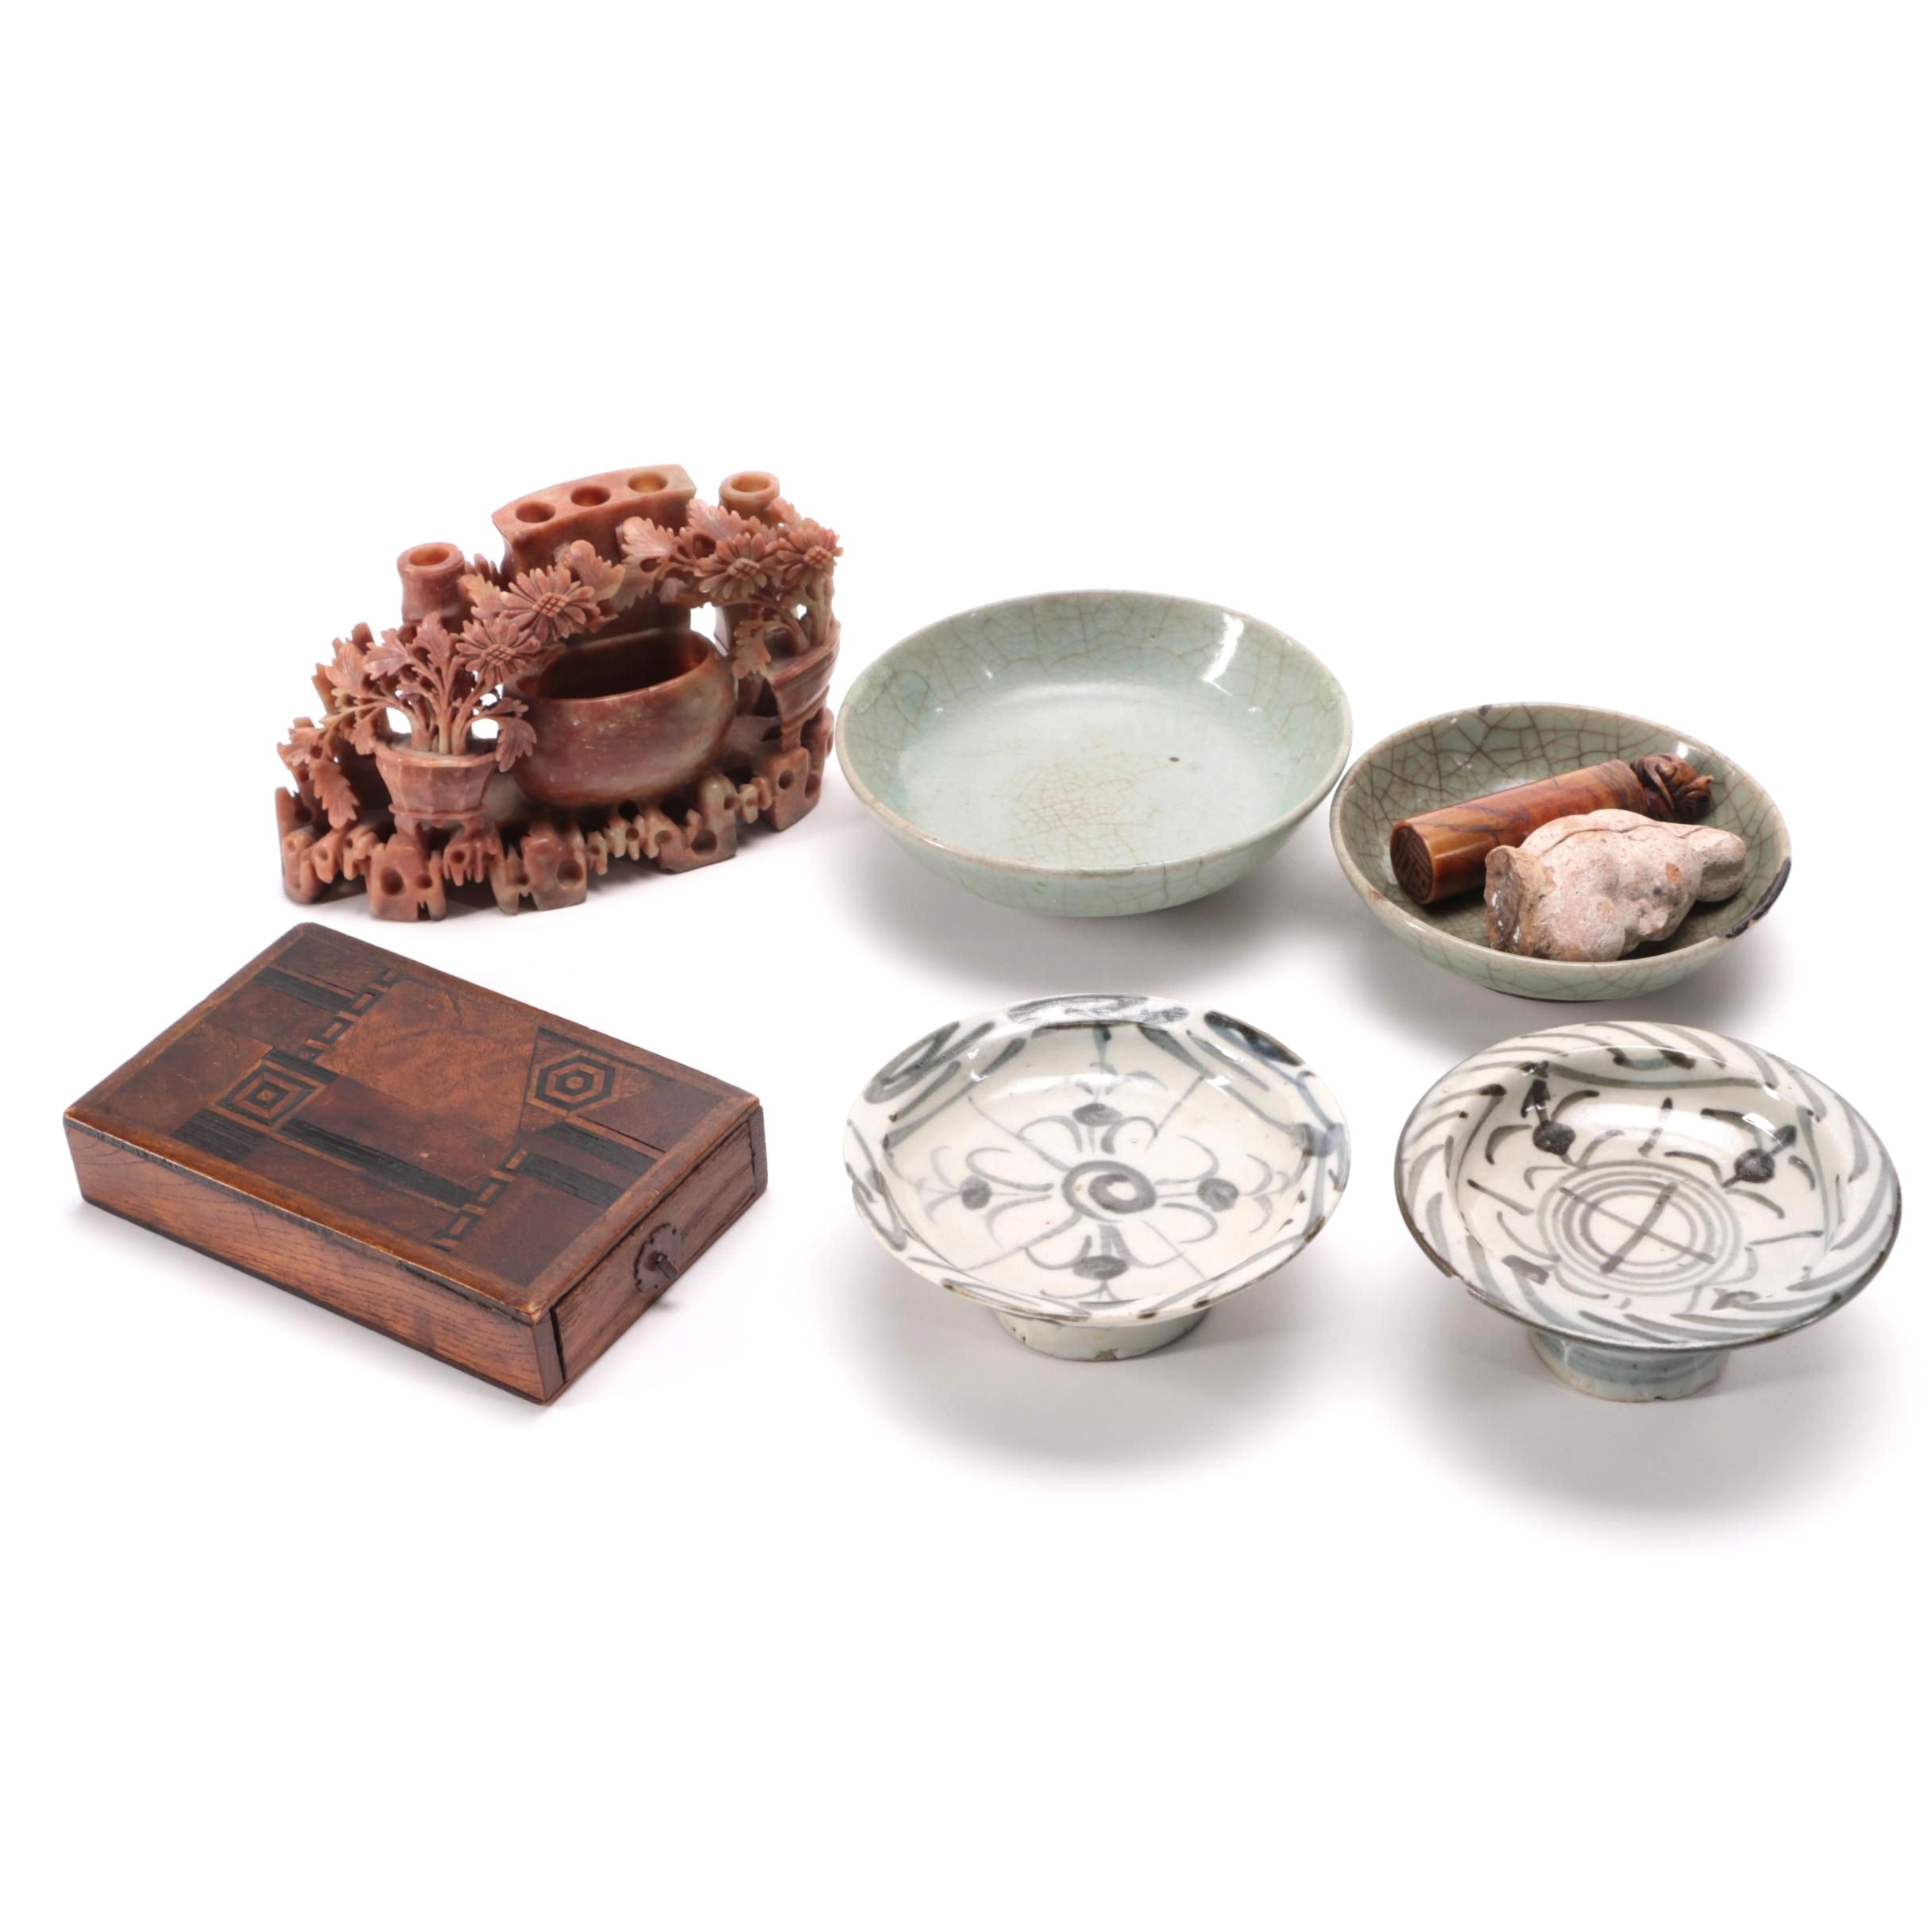 Antique Chinese Stoneware Bowls and Japanese Wooden Box and Other Asian Decor